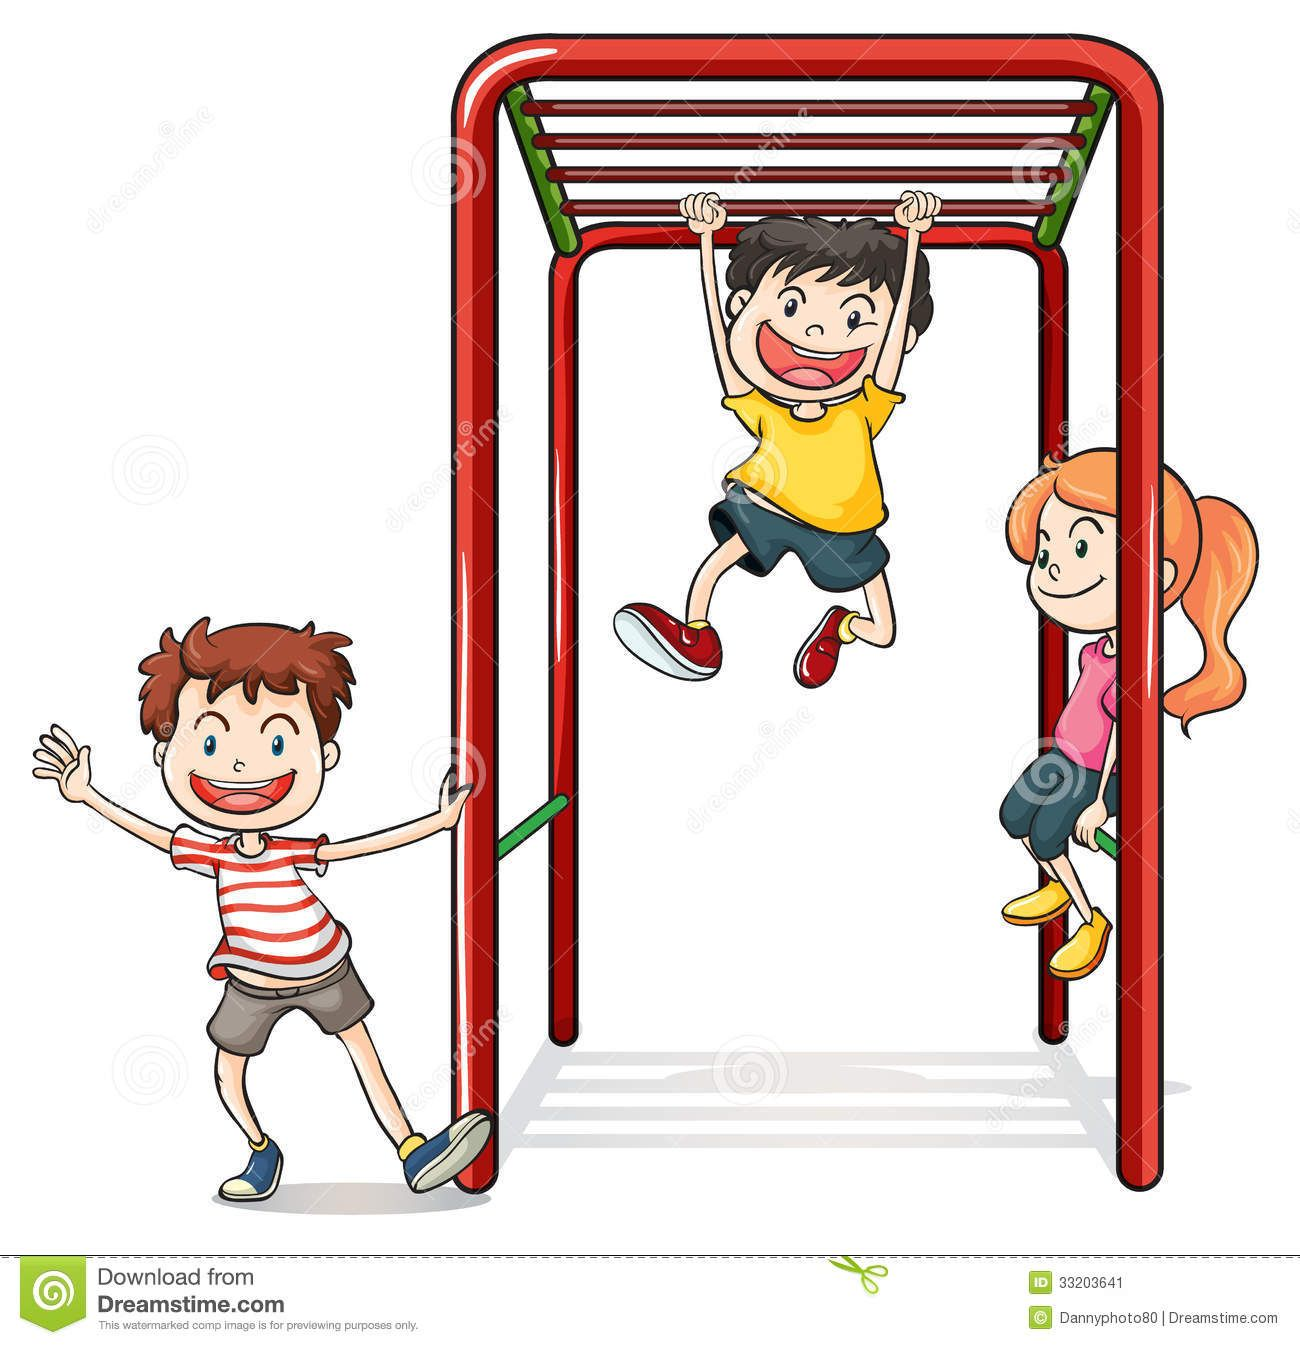 clip art kids school monkey bars Google Search School